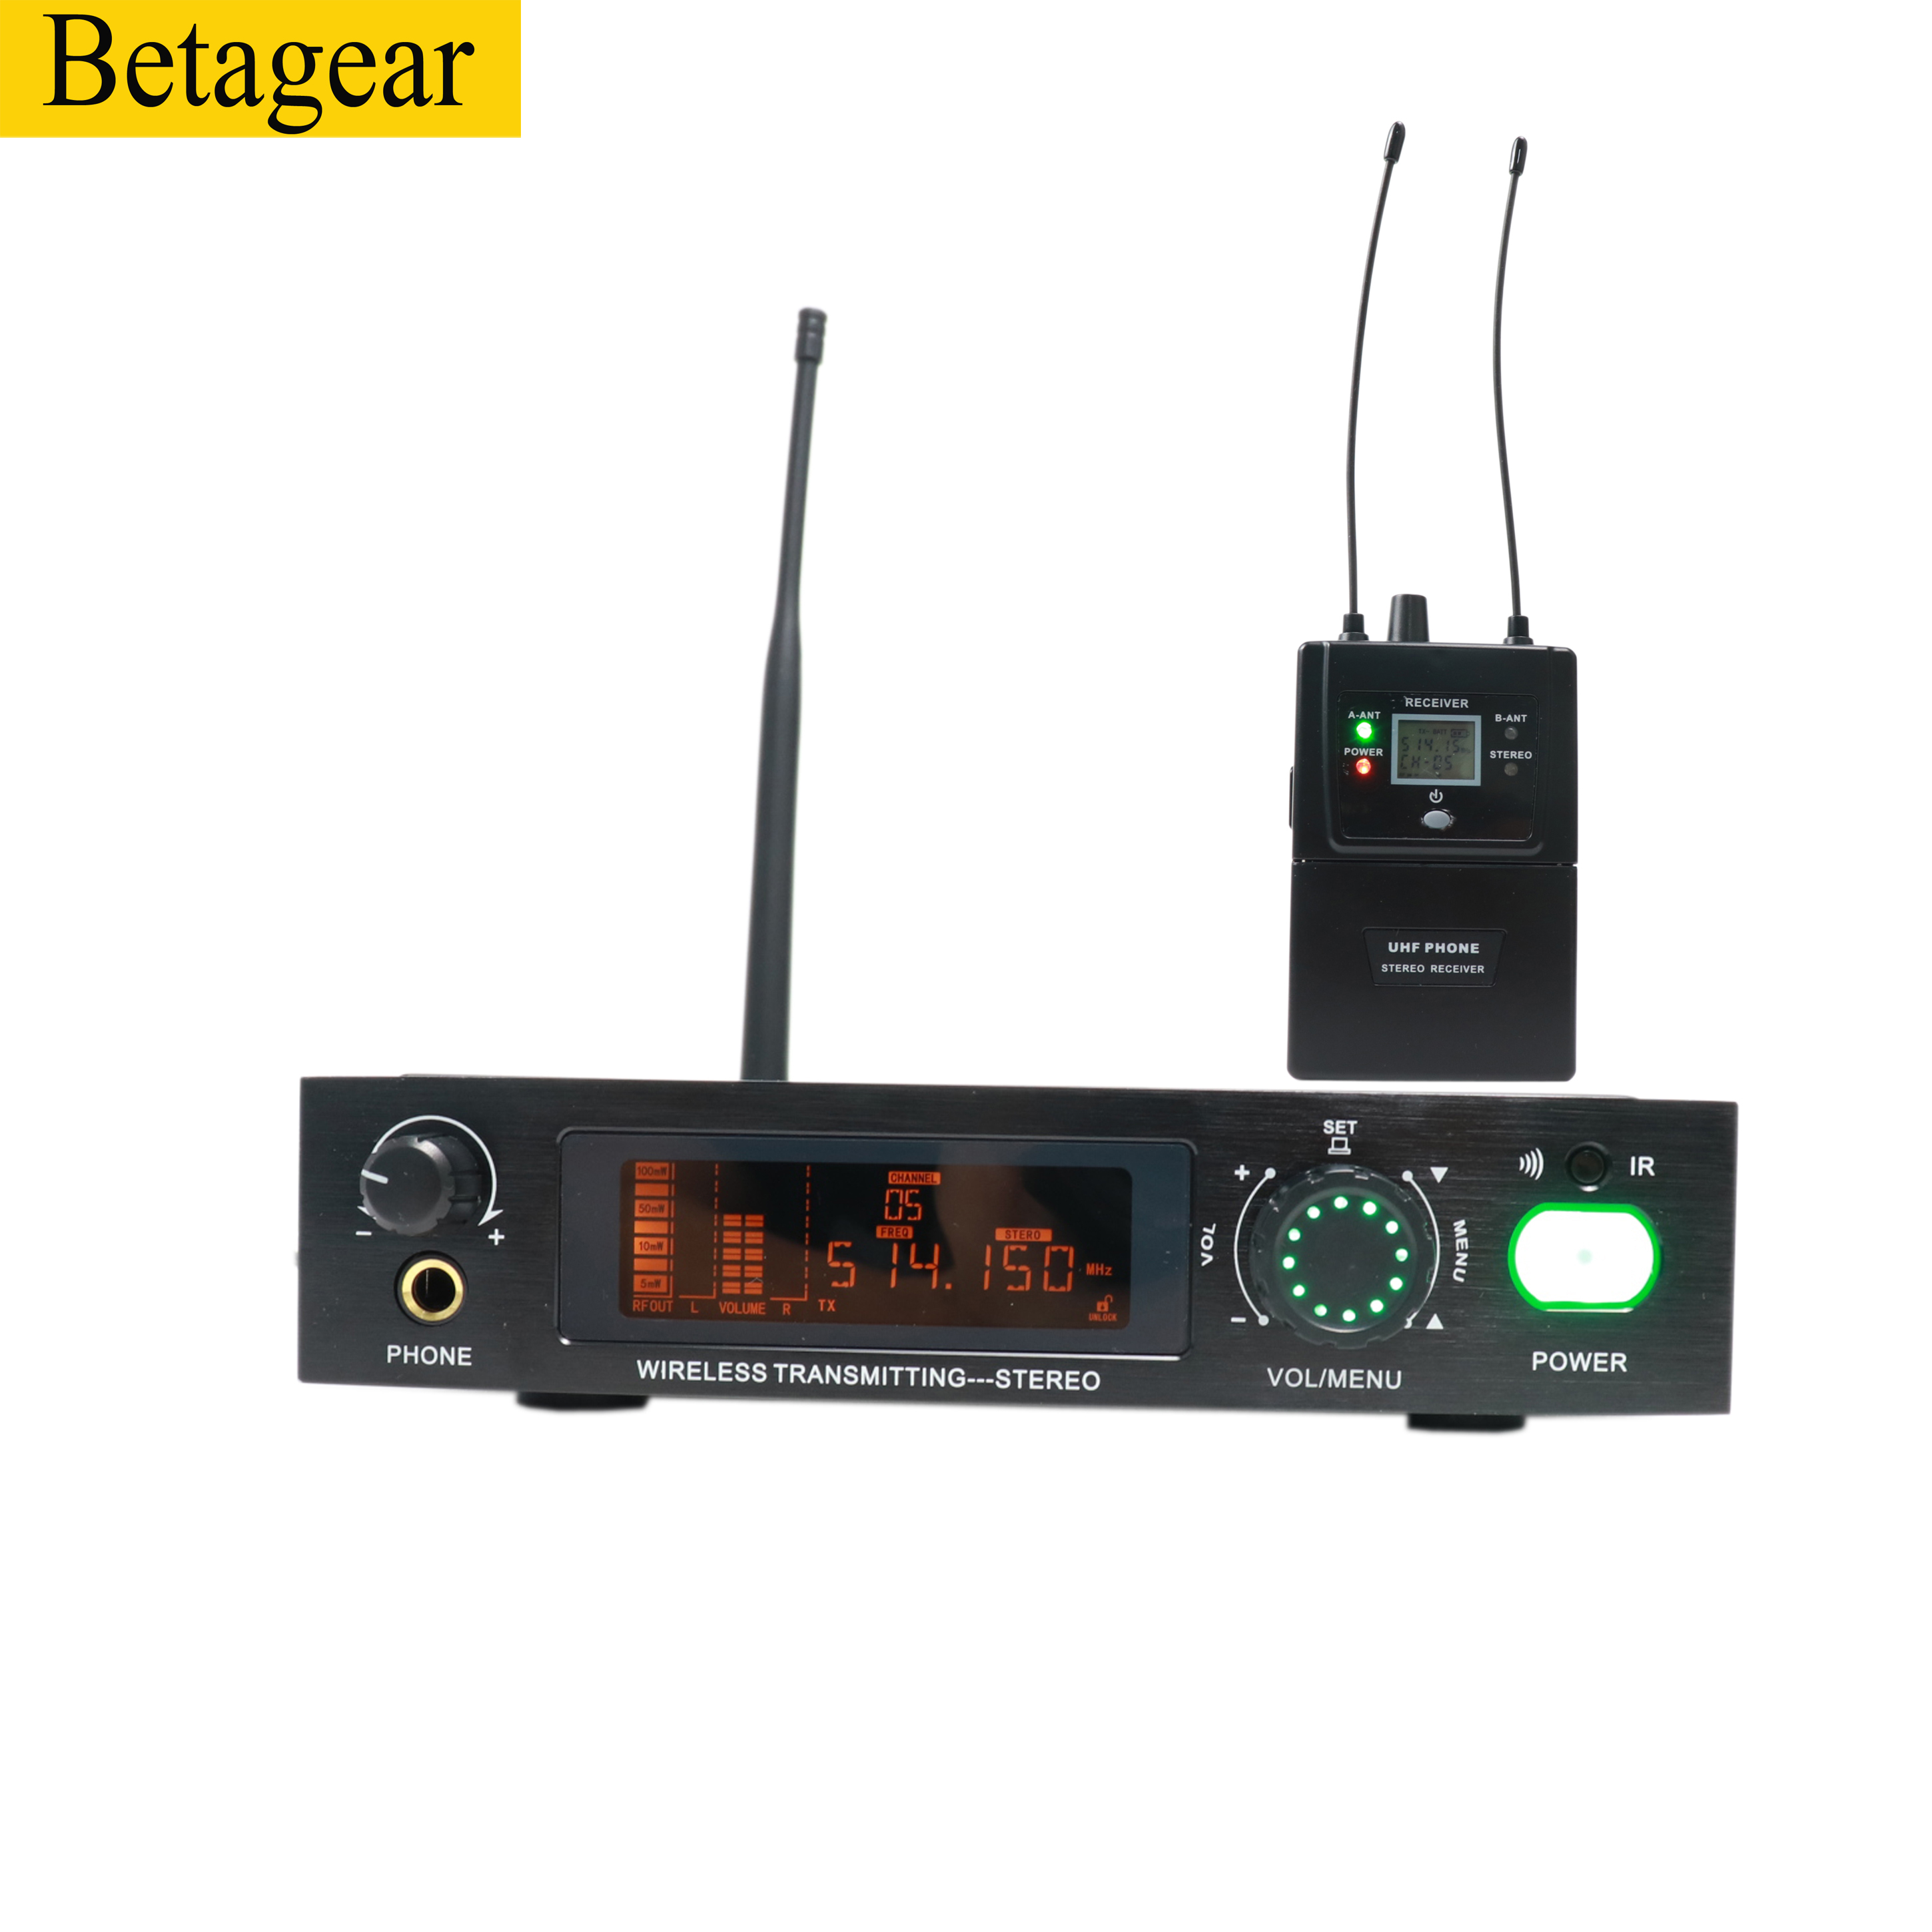 Betagear Stereo 782iem <font><b>in</b></font> ohr <font><b>monitor</b></font> professionelle bühne leistung drahtlose <font><b>system</b></font> audio aufnahme studio uhf <font><b>wireless</b></font> <font><b>monitor</b></font> image